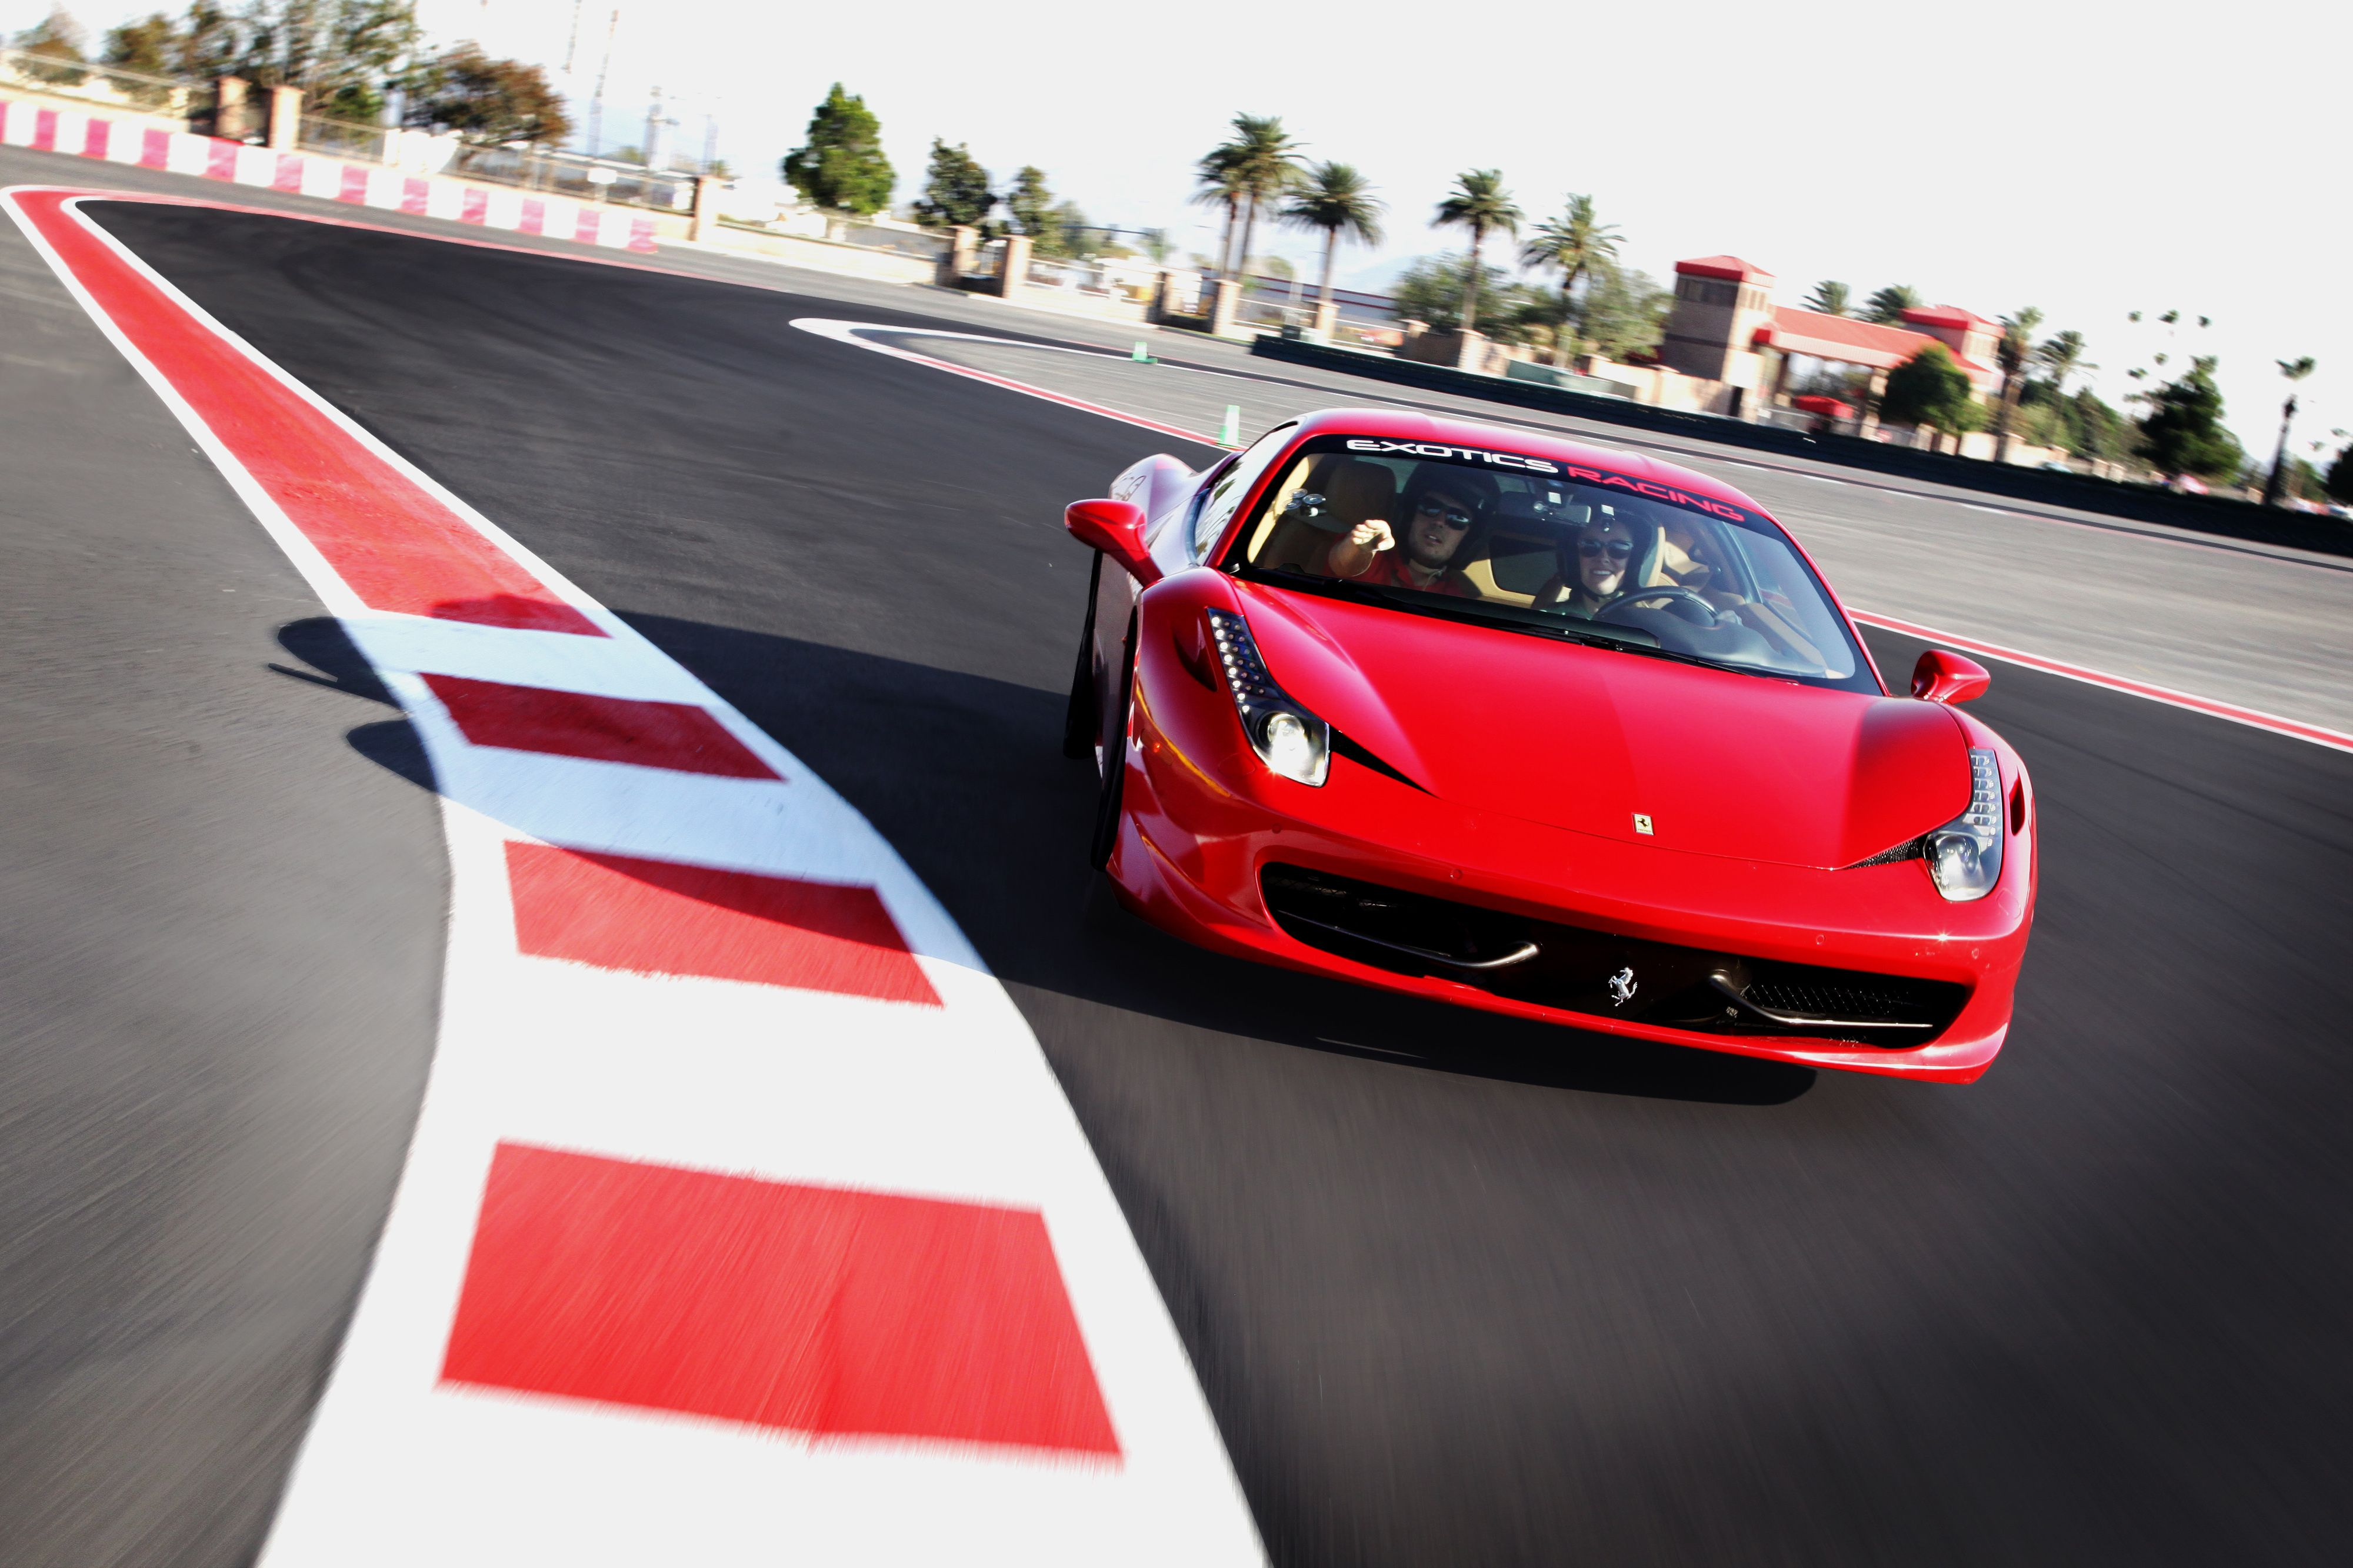 Exotics Racing Opens New 1 2 Mile Racetrack At Auto Club Speedway Race Track Racing Supercar Driving Experience